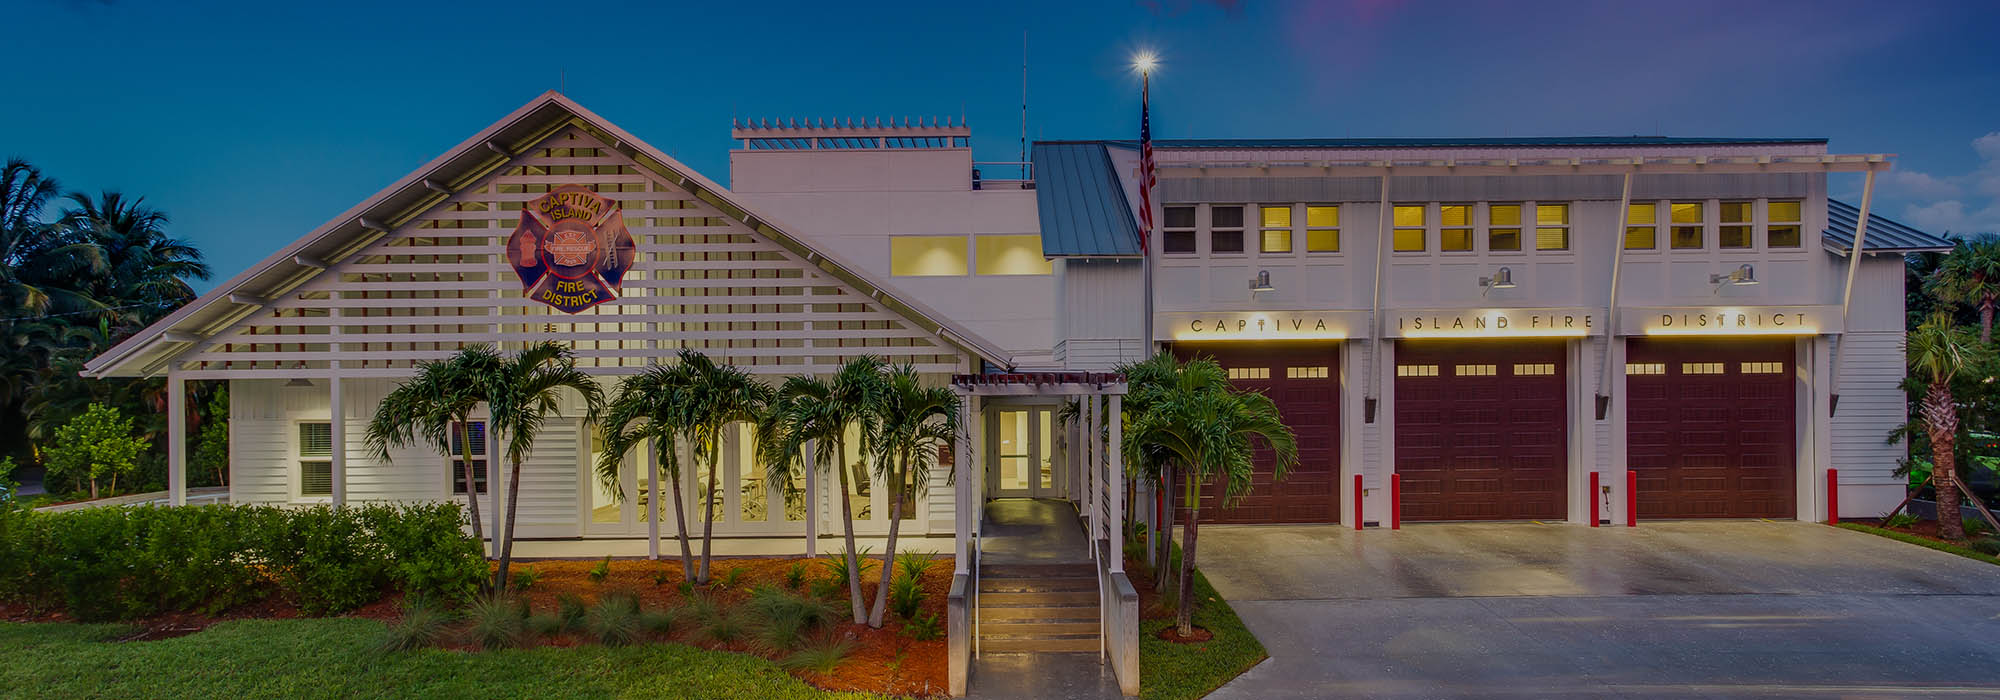 Gladstone builders southwest florida commercial contractor for Gladstone builders